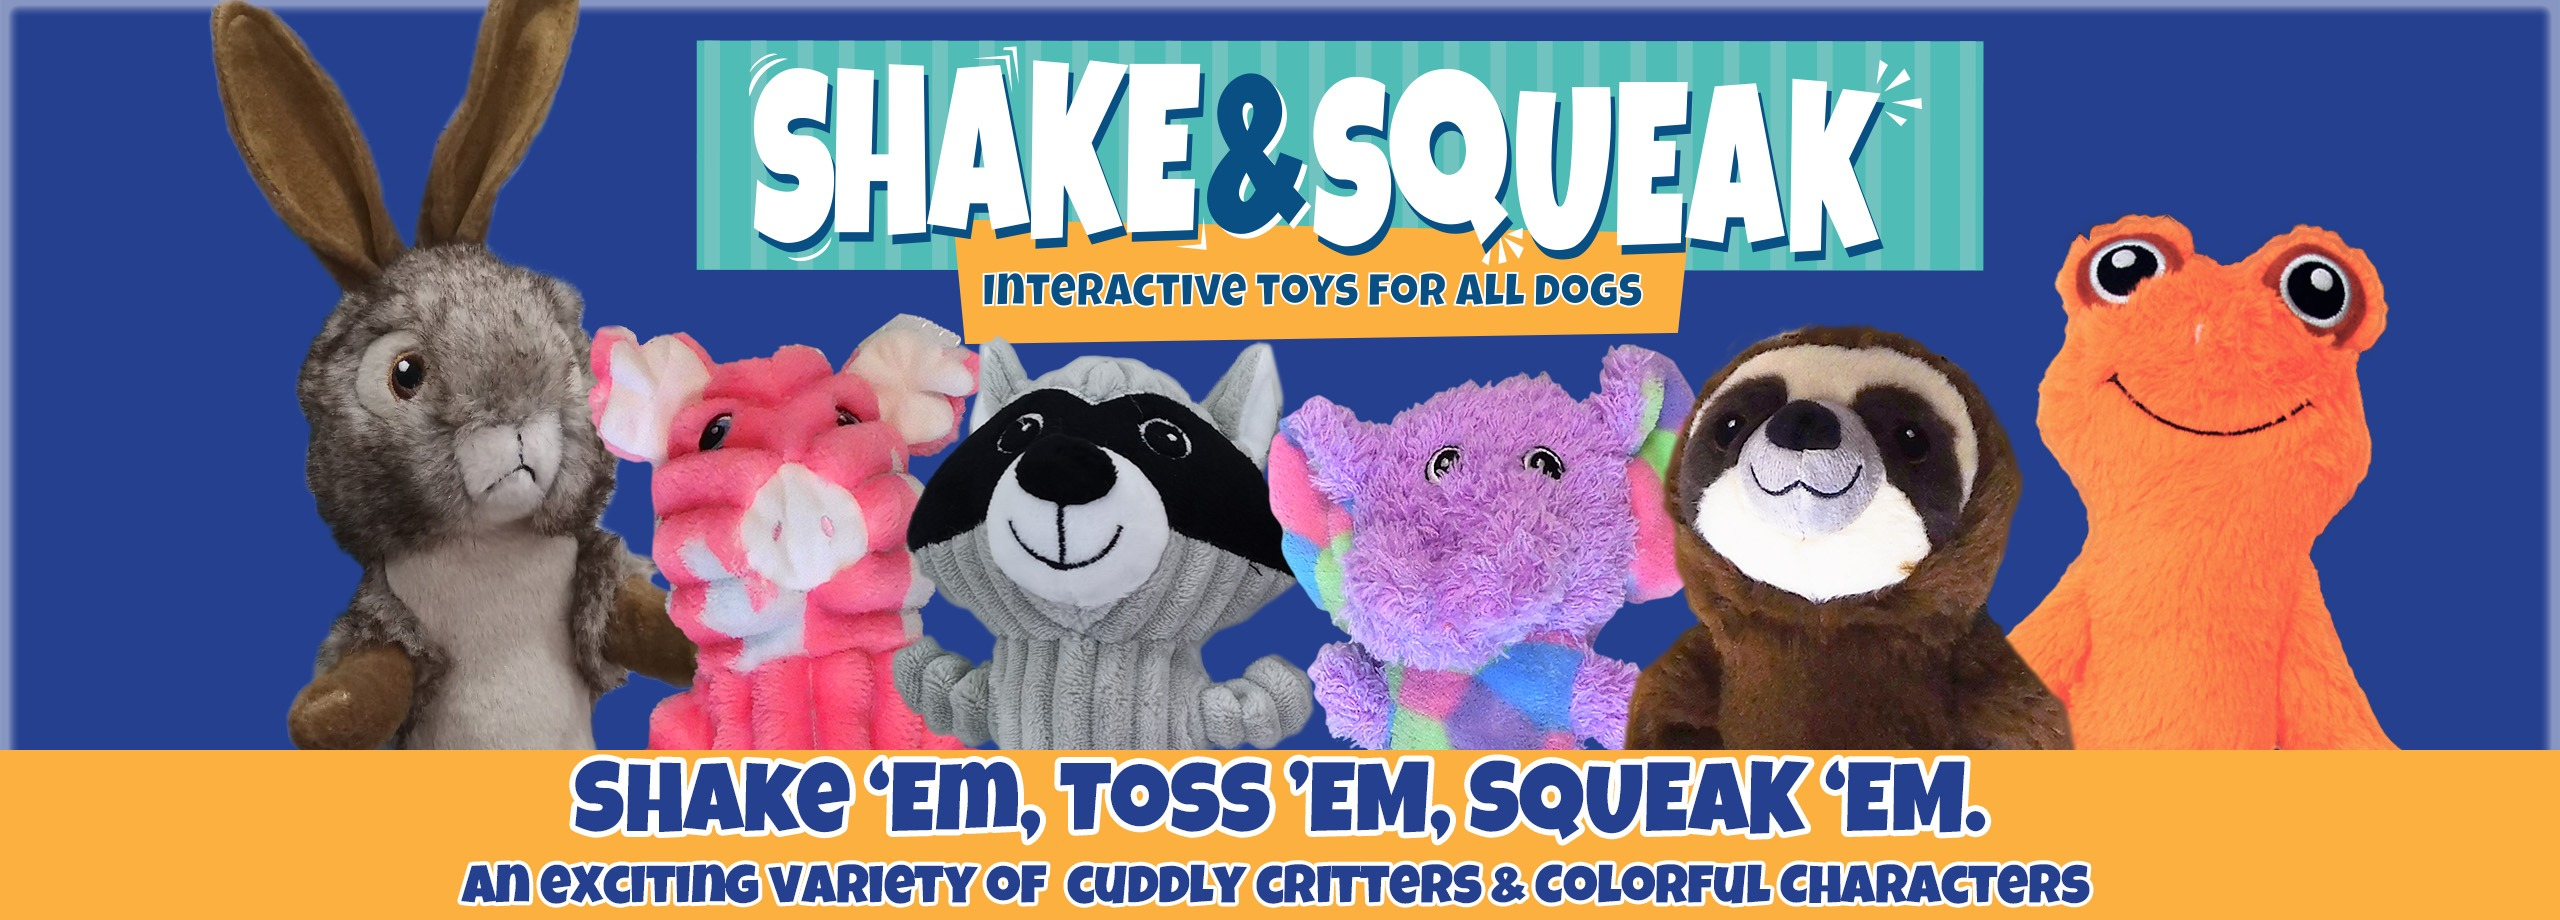 Logical Pet Shake and Squeak Premium Plush Toys